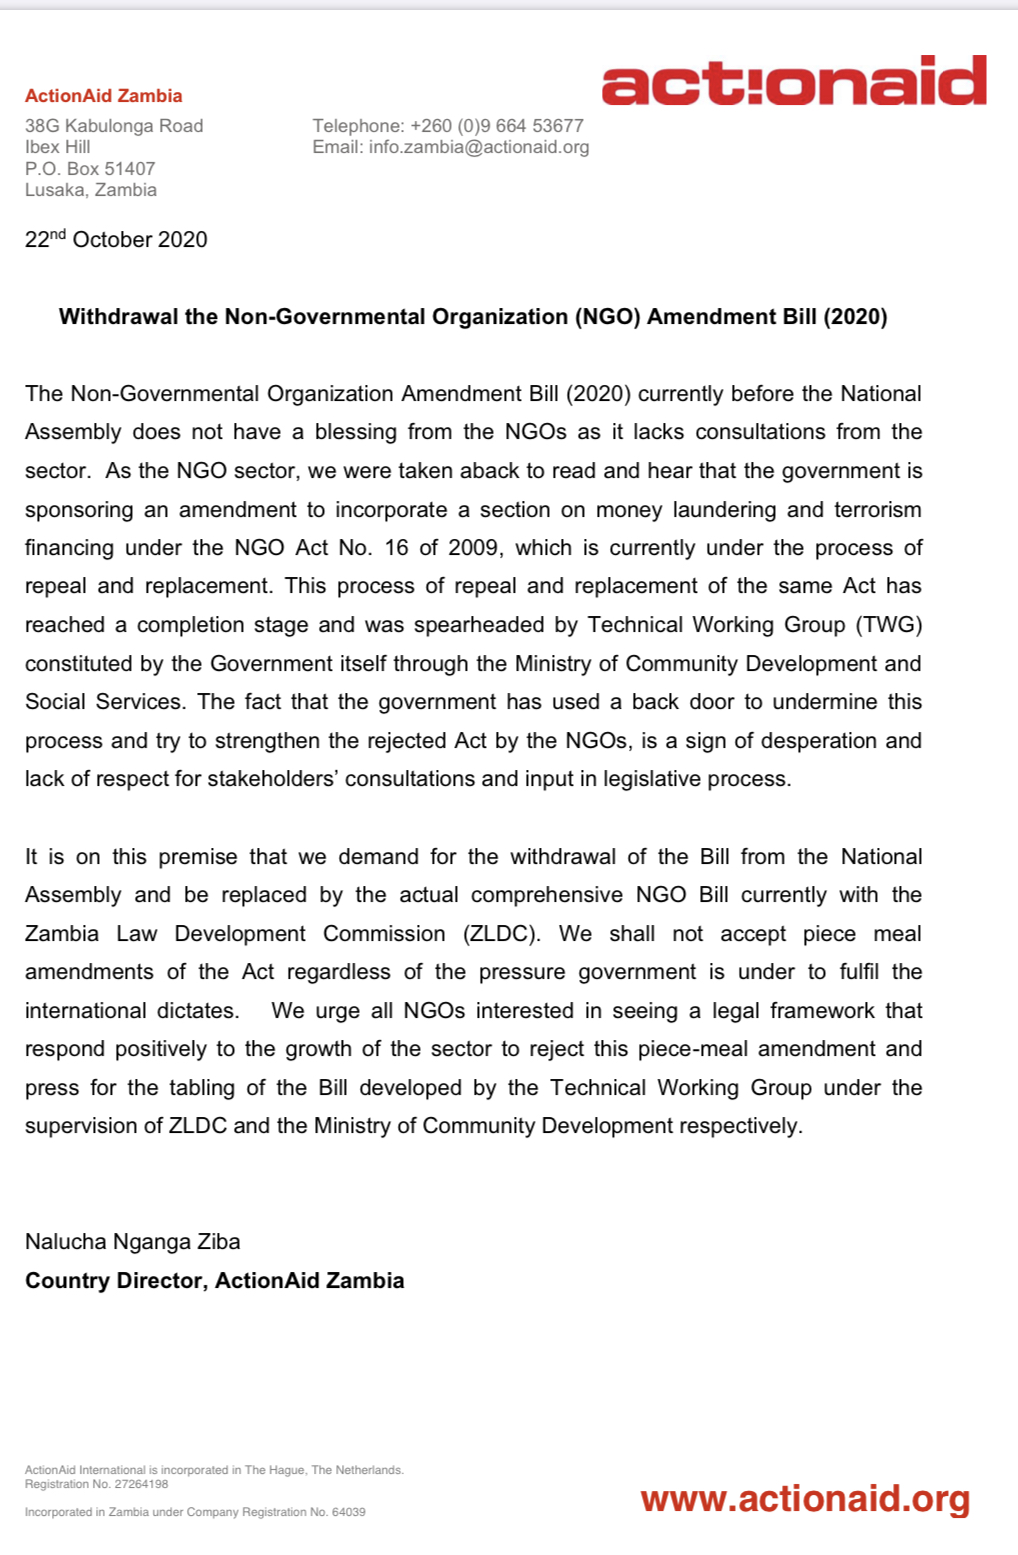 Action aid says NGO amendment bill should be withdrawn from parliament